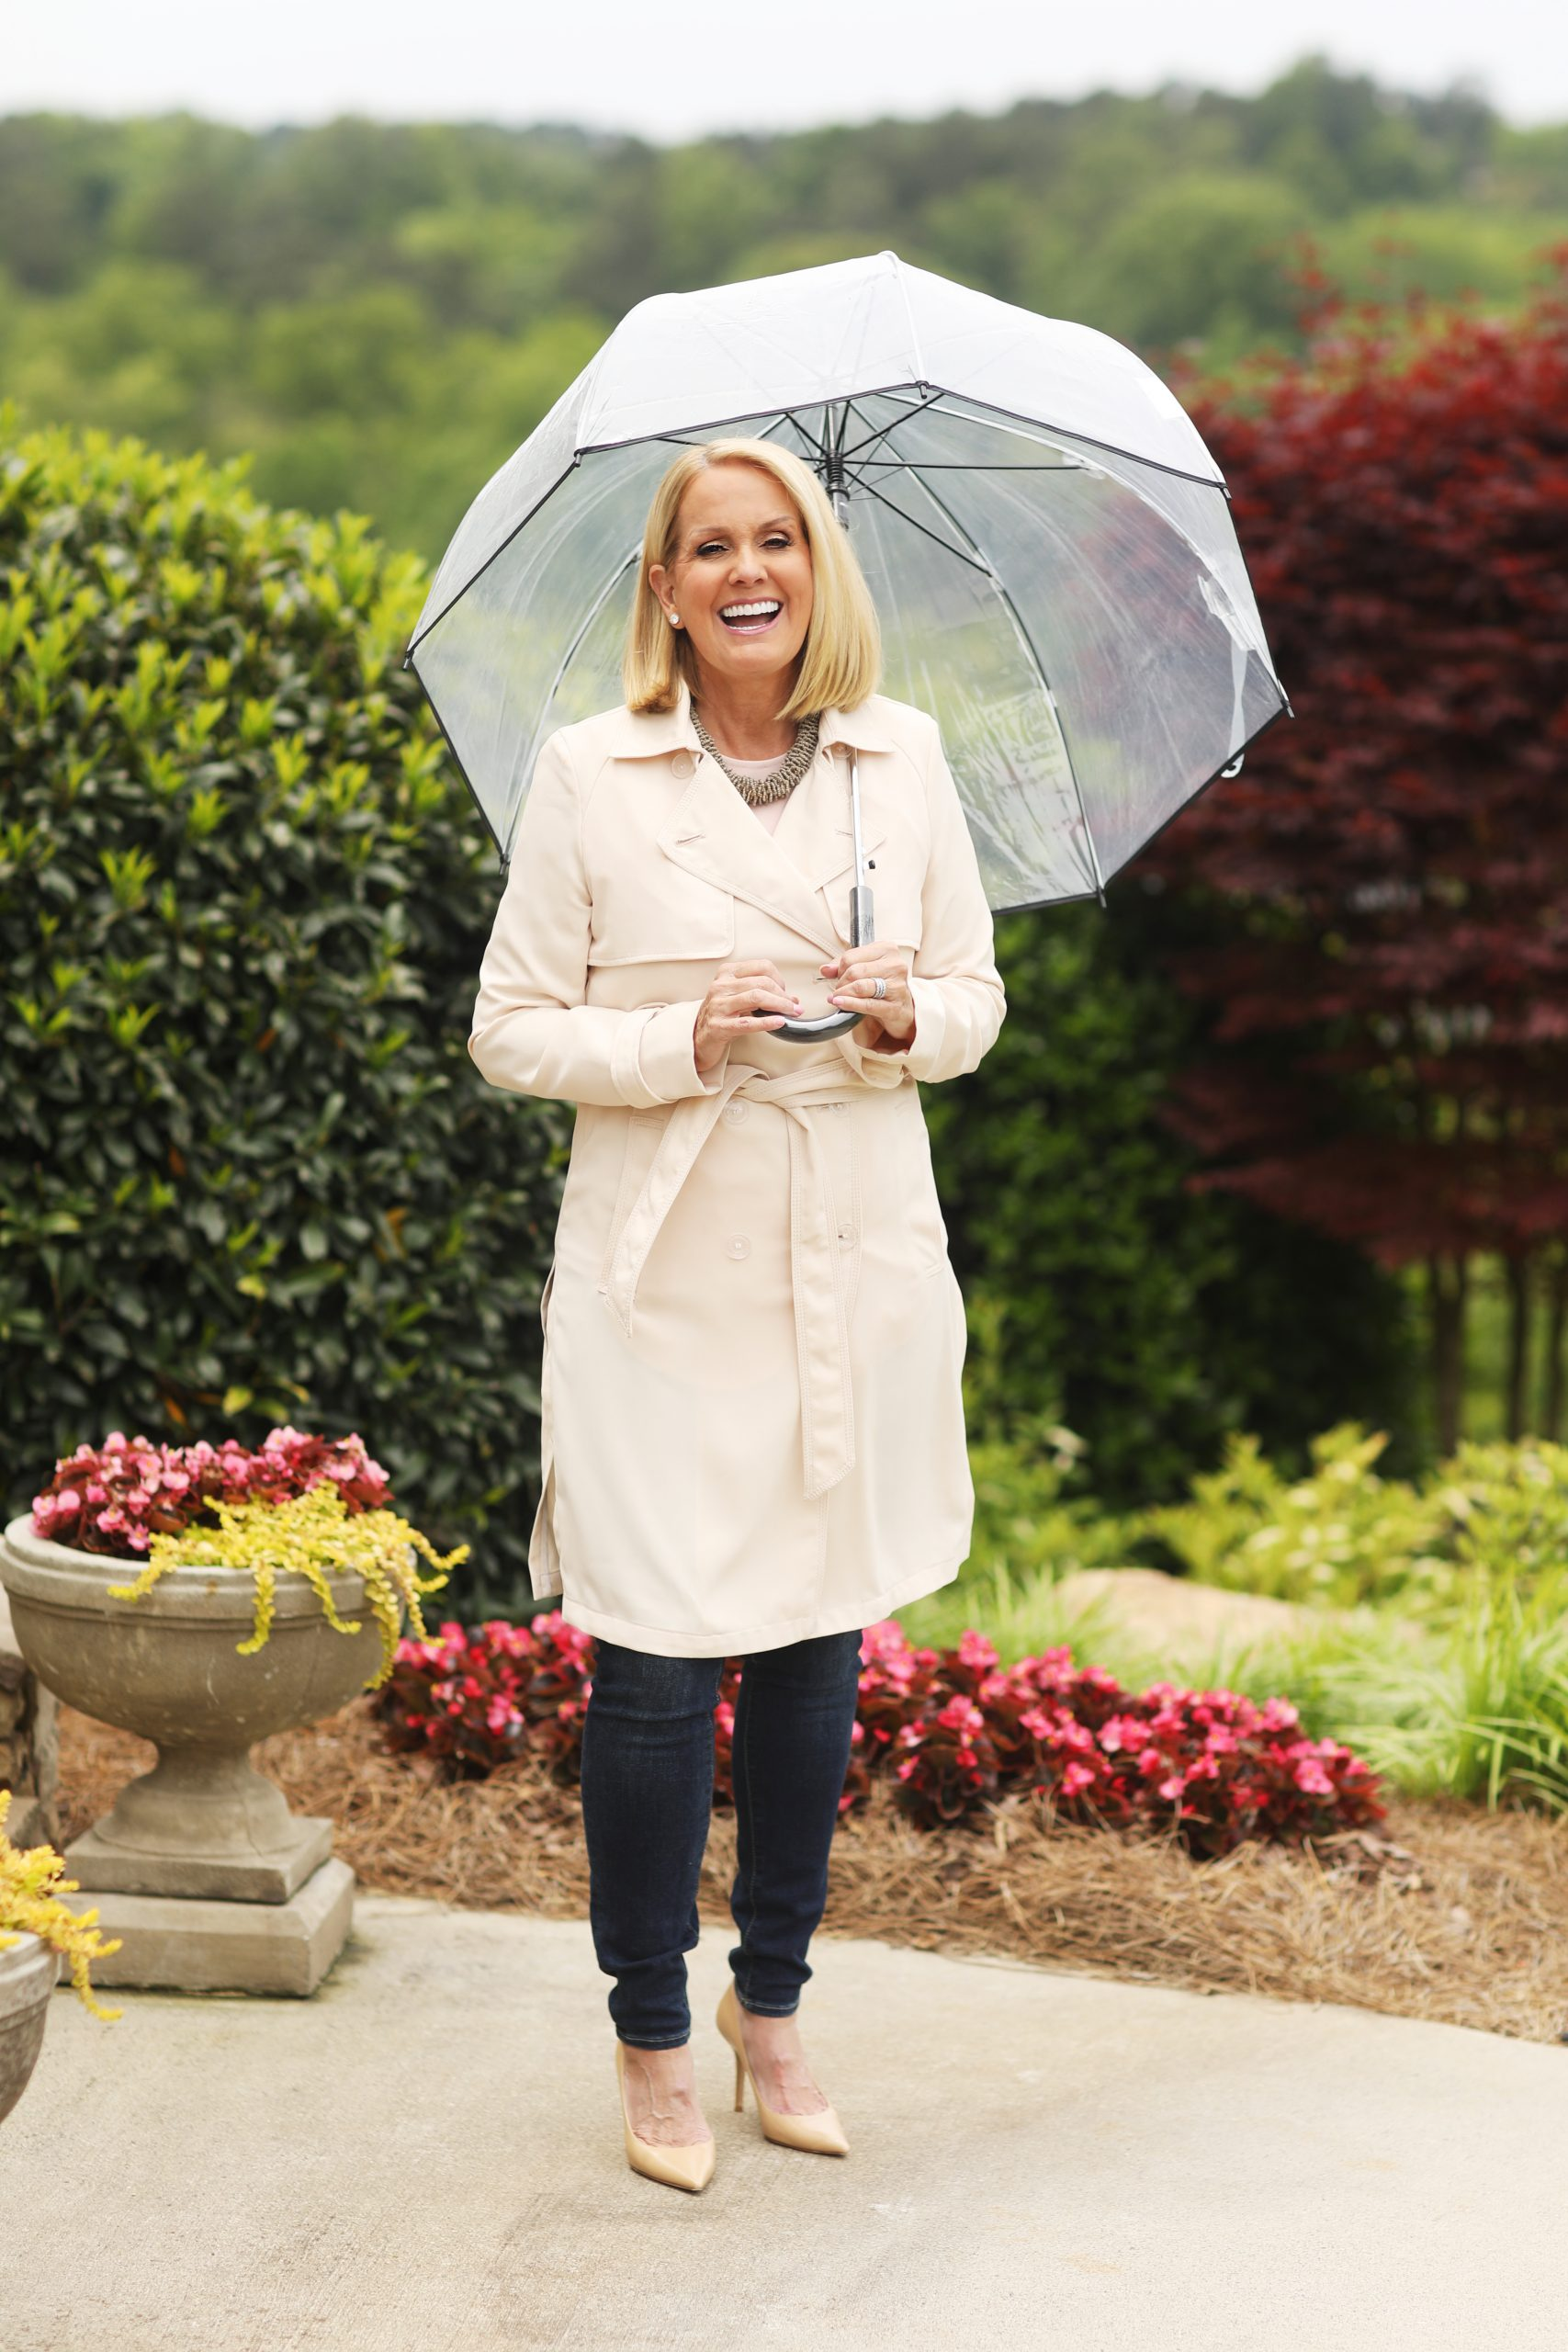 Lori Allen wears a trench coat in the rain